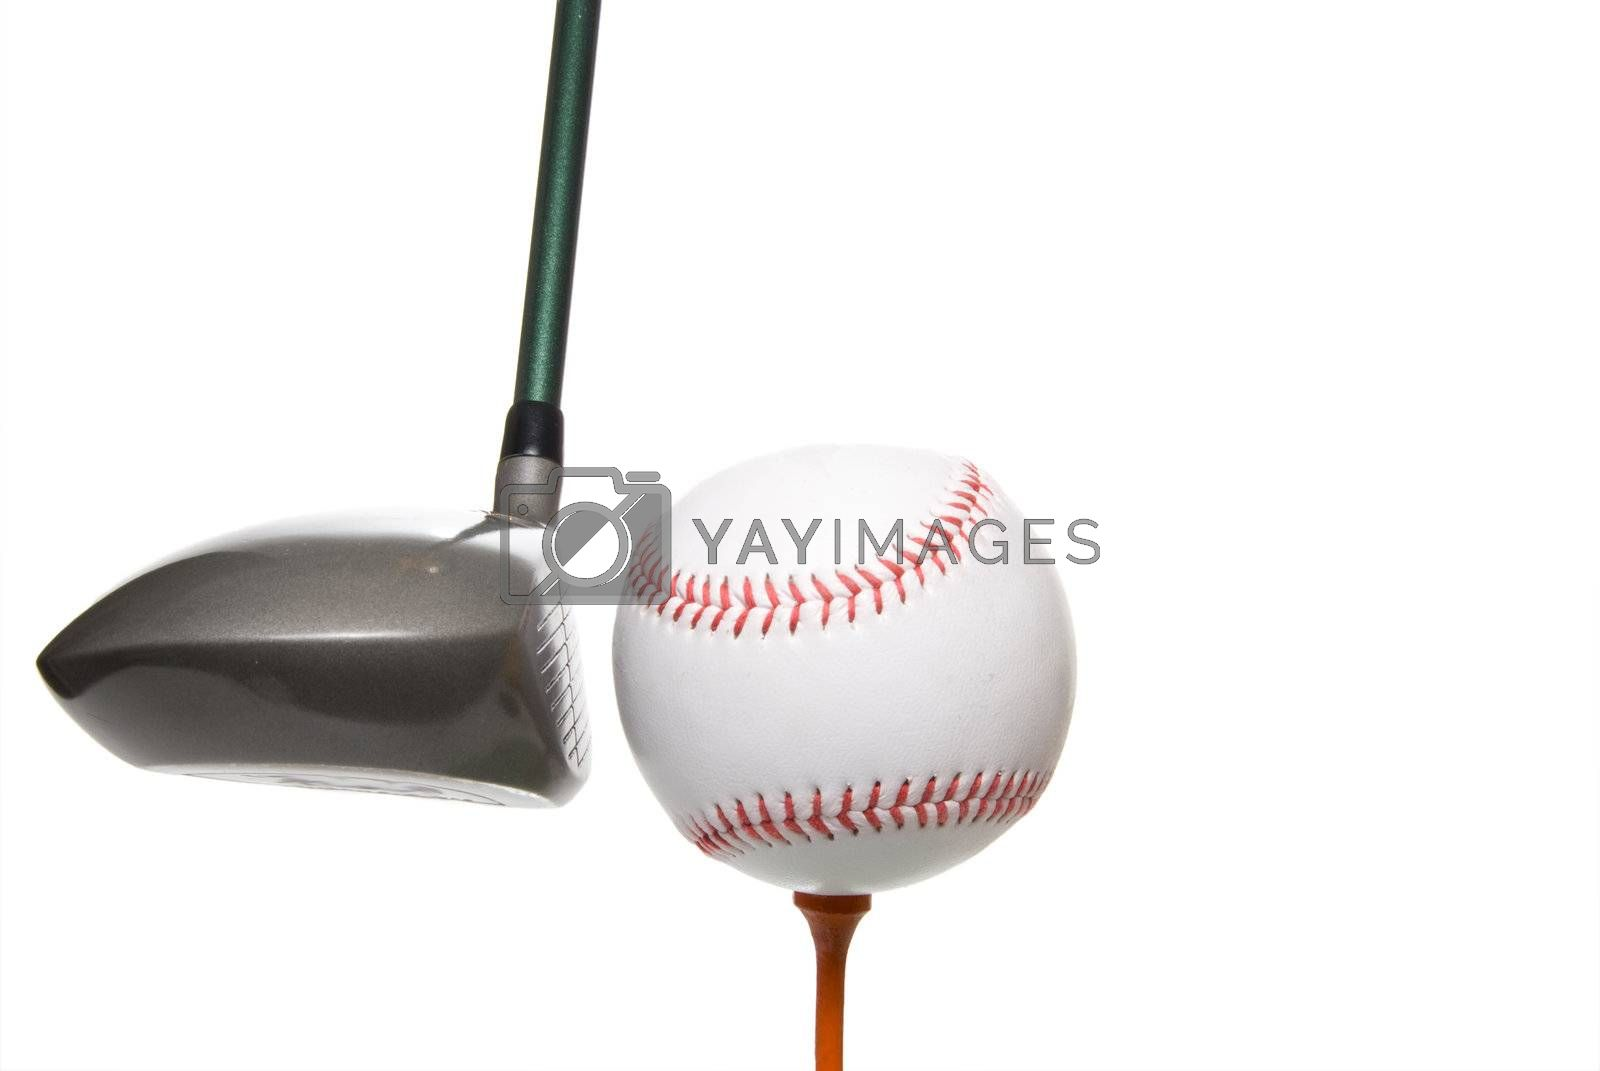 A driver before it hits a baseball on a golf tee.